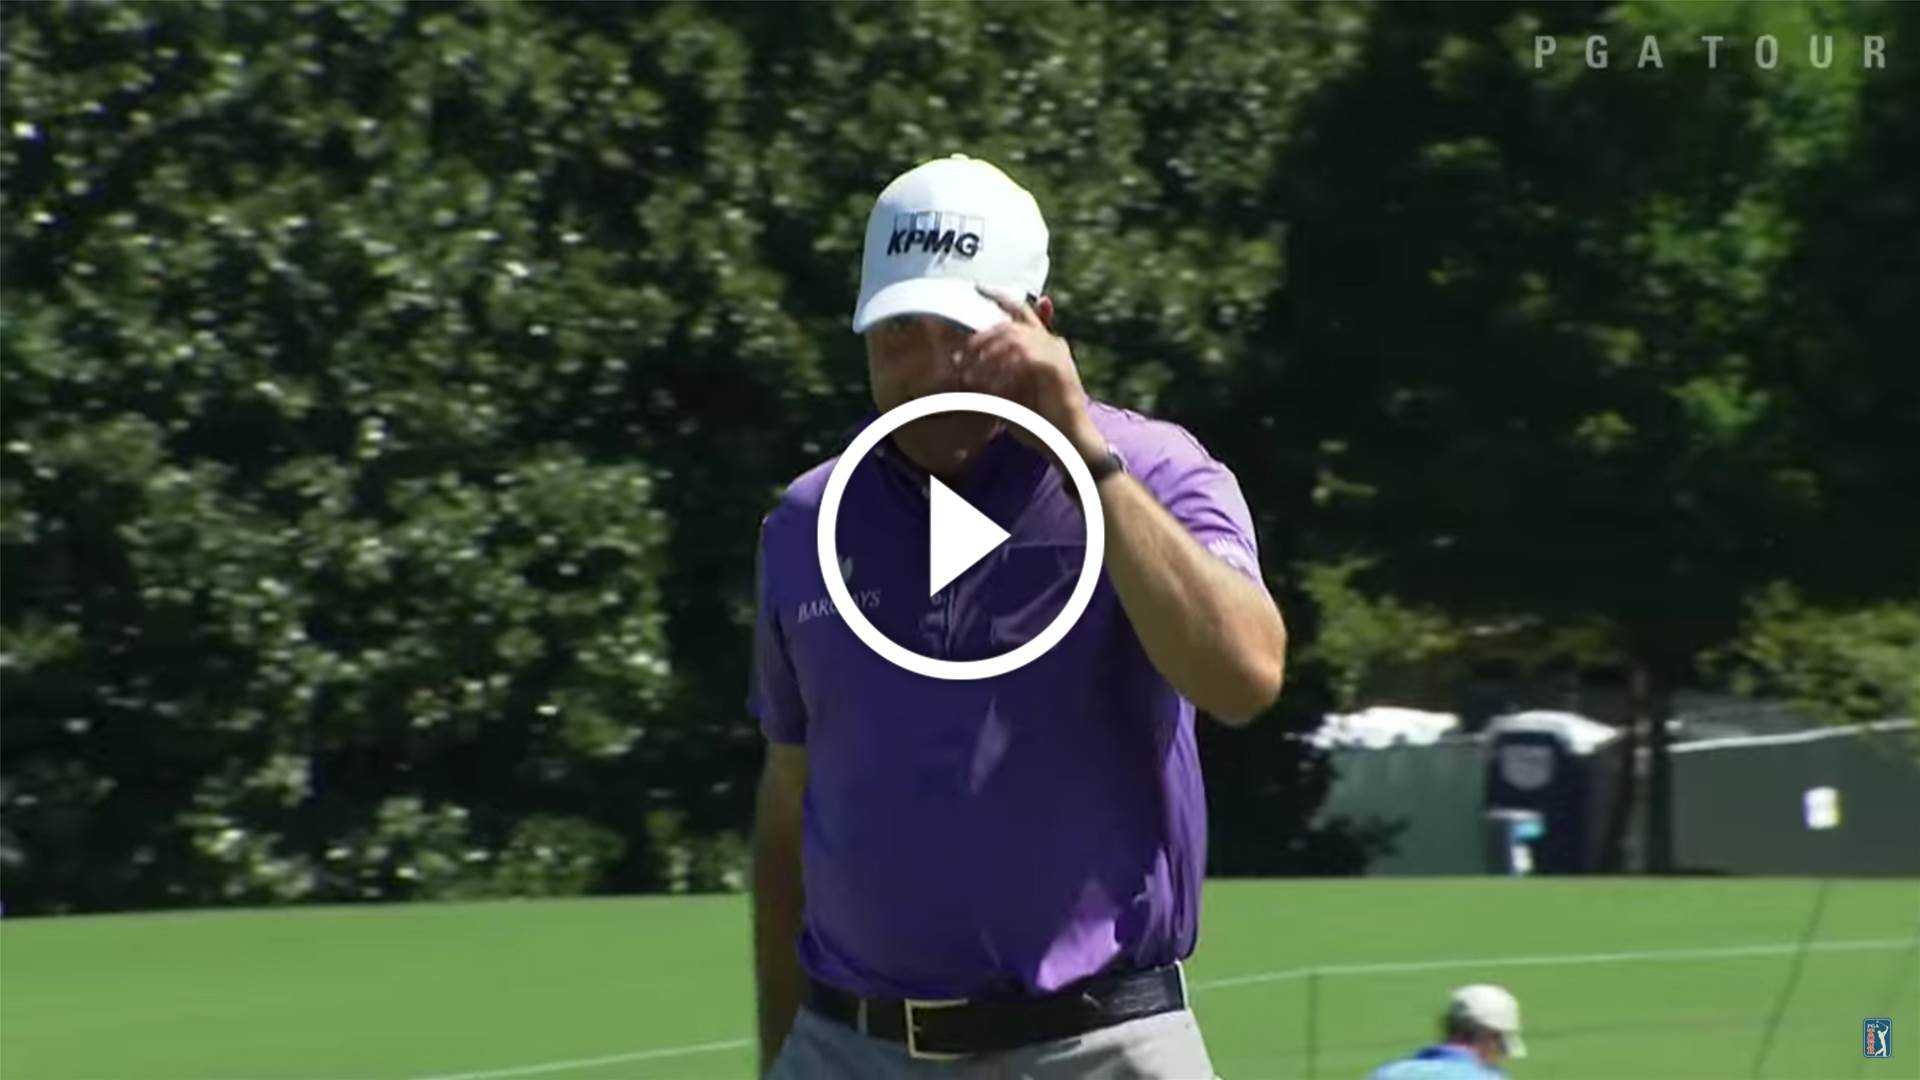 PGA TOUR: Mickelson drains a 94-foot birdie bomb